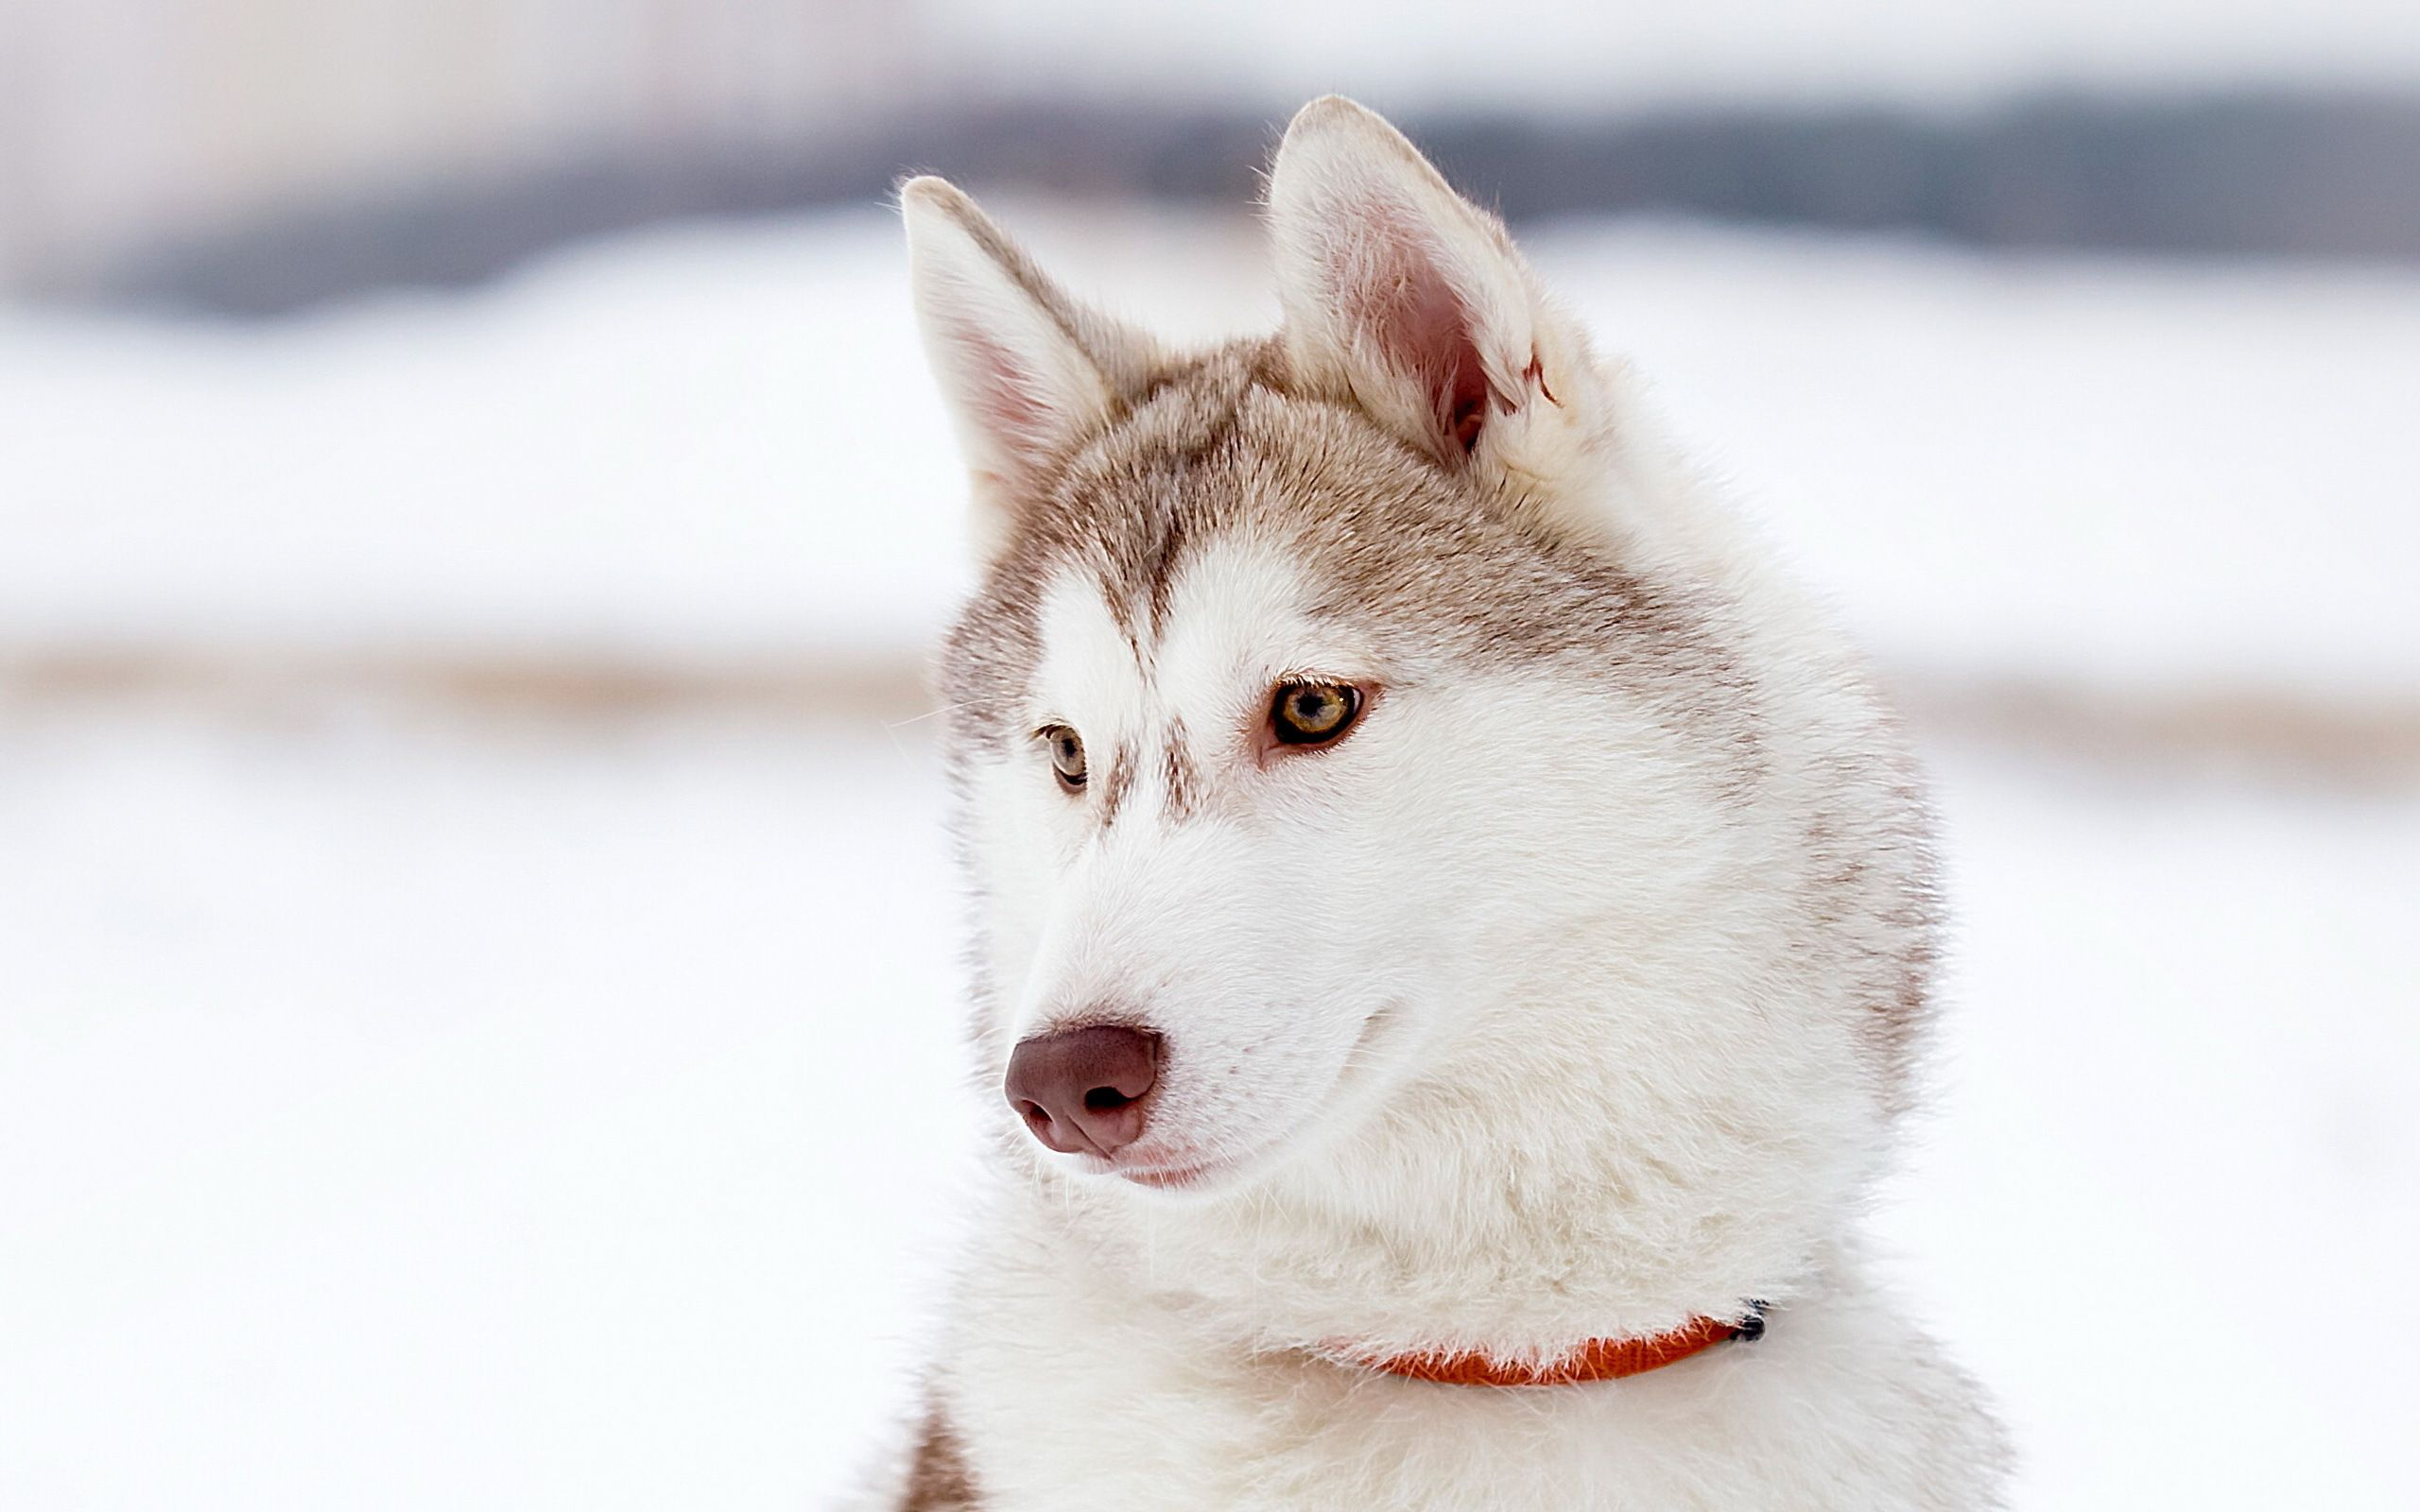 White Husky Wallpapers   Top White Husky Backgrounds 2560x1600